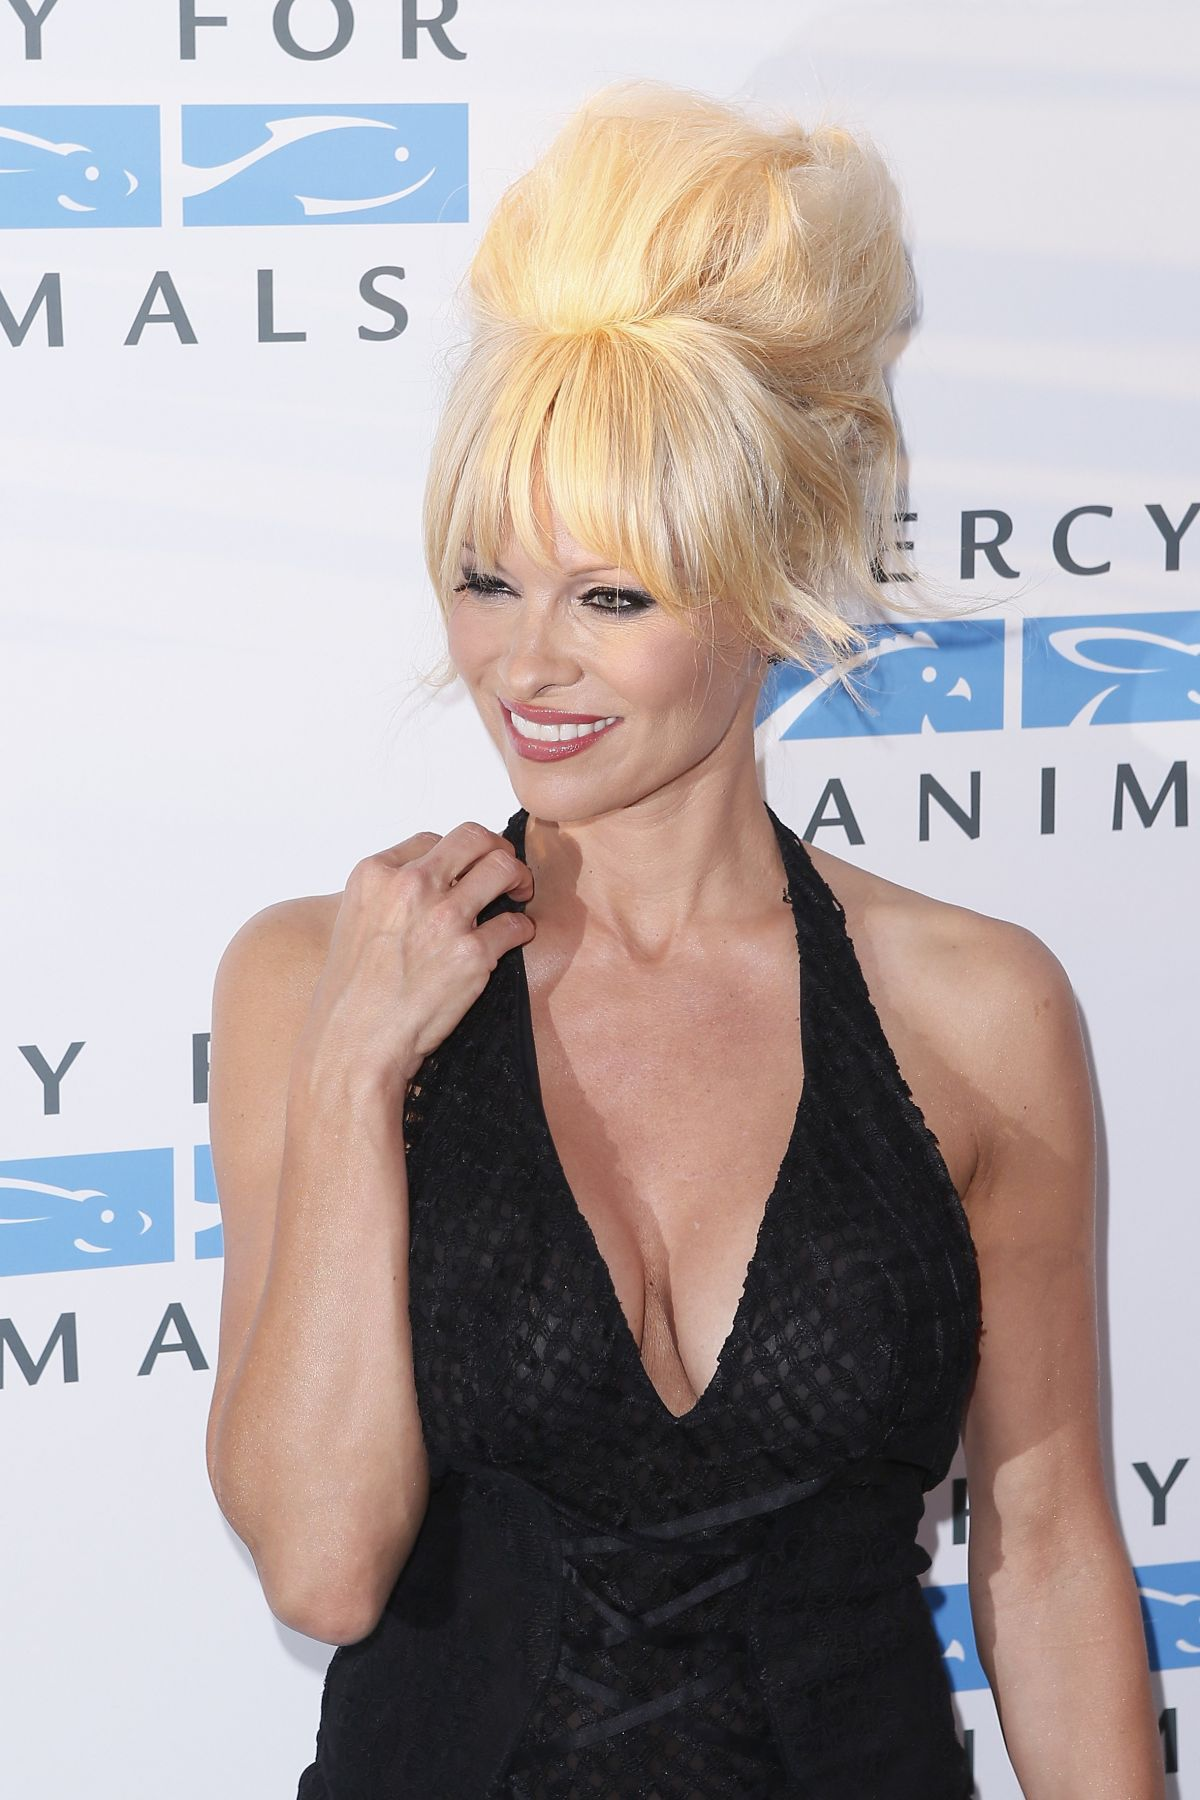 PAMELA ANDERSON at Mercy for Animals 15th Anniversary Gala in West Hollywood